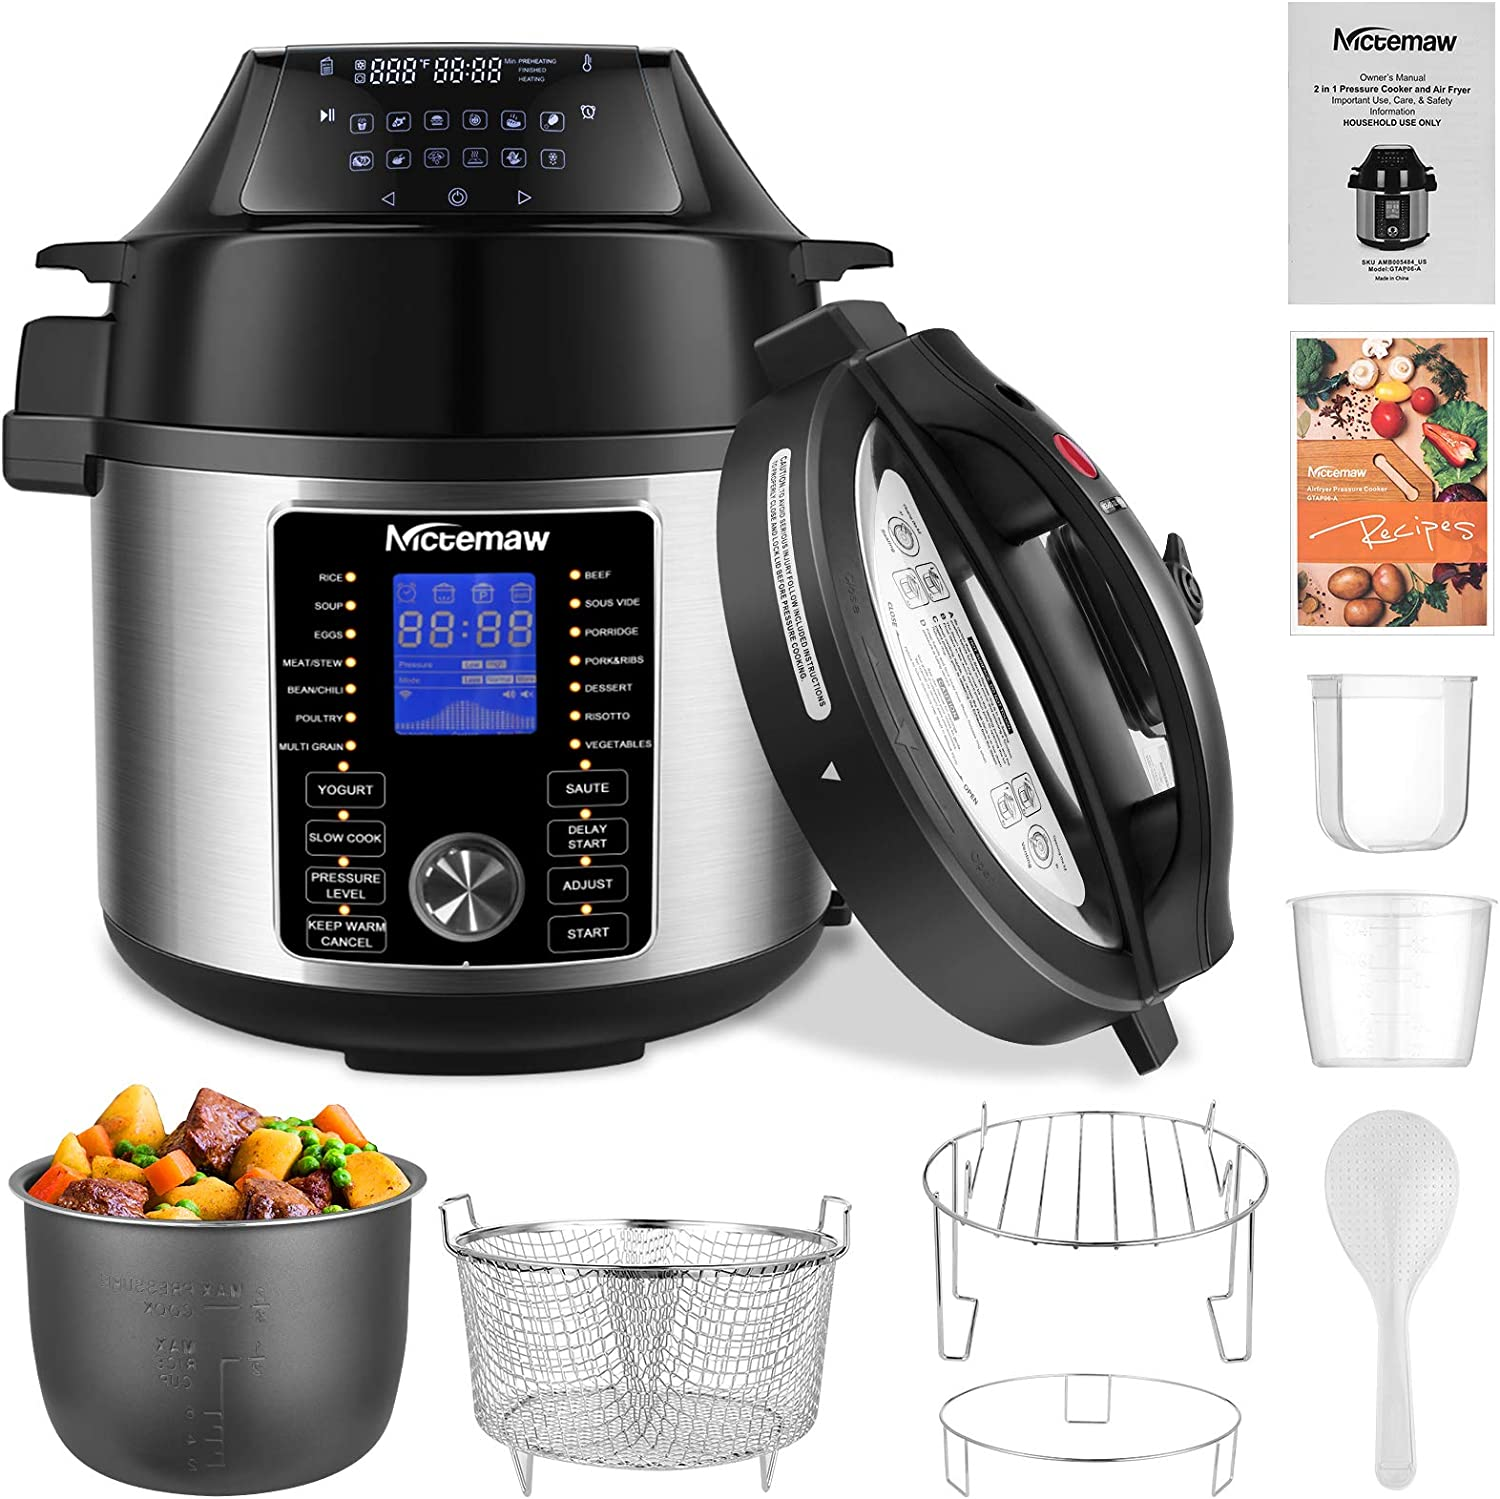 Nictemaw 17-in-1 Electric Pressure Cooker 6-Quart